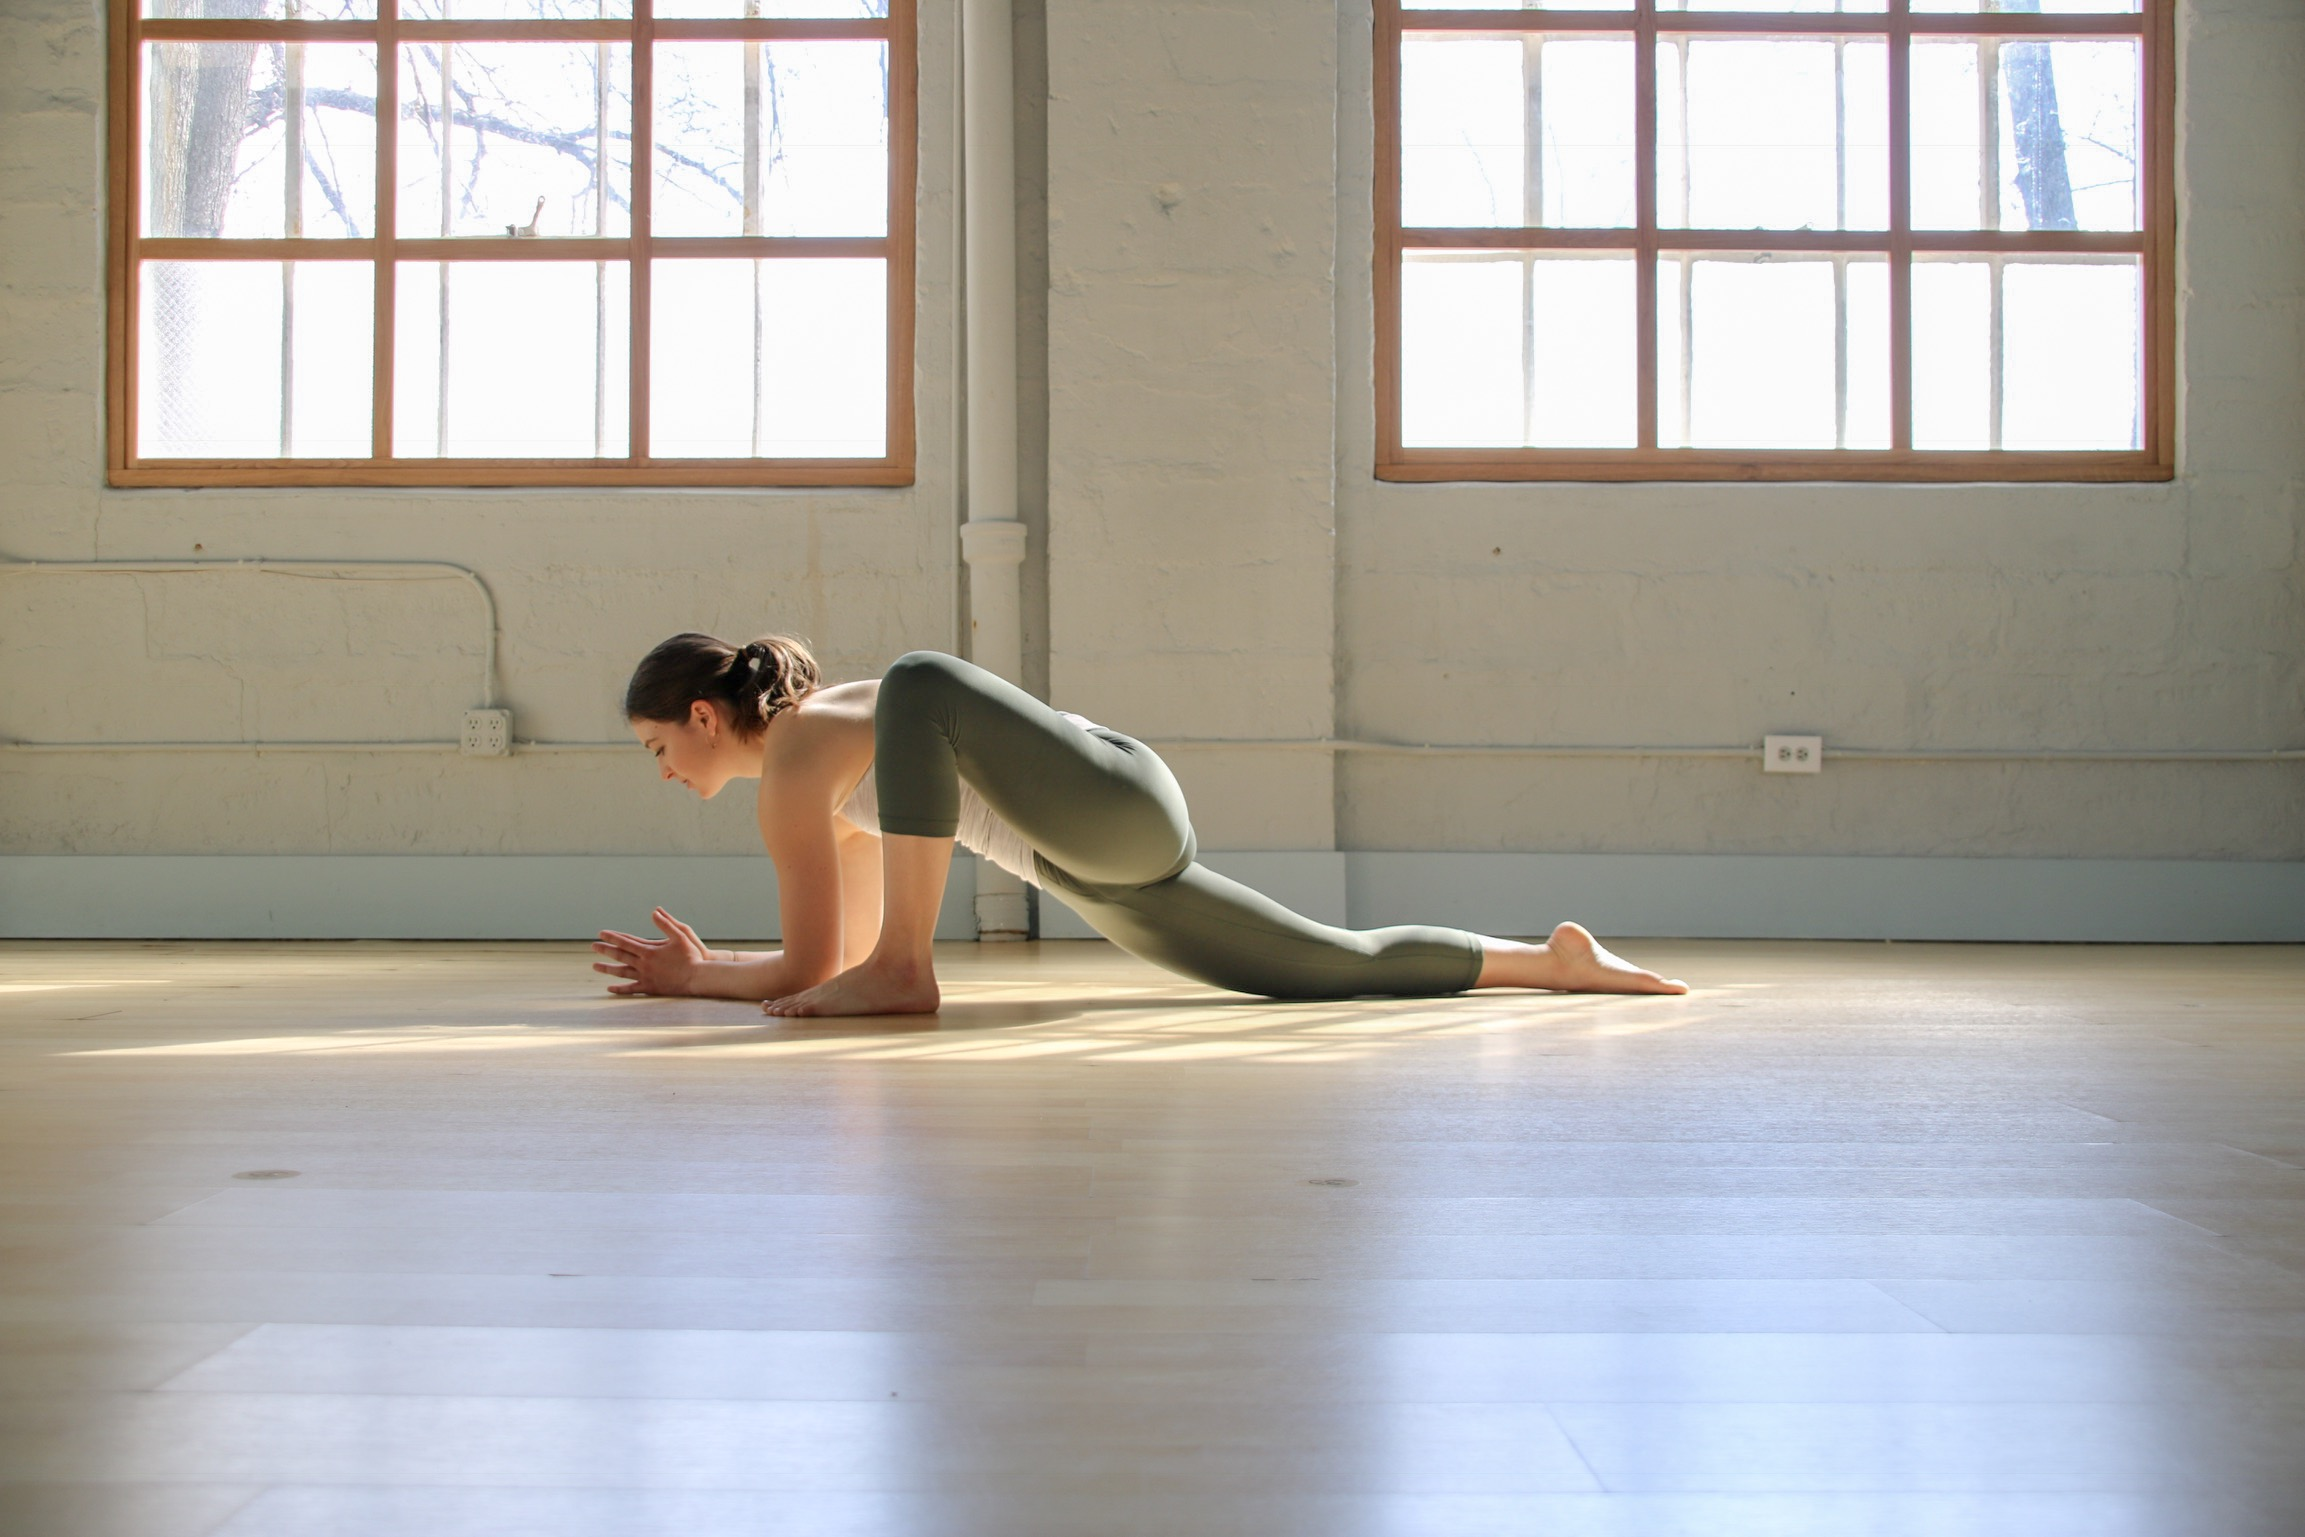 How to practice: From yogi squat, take both hands to the floor between the feet. Step the left foot back and lower hands or forearms to the floor or a block. Take hands to the mat and return to yogi squat to switch sides.